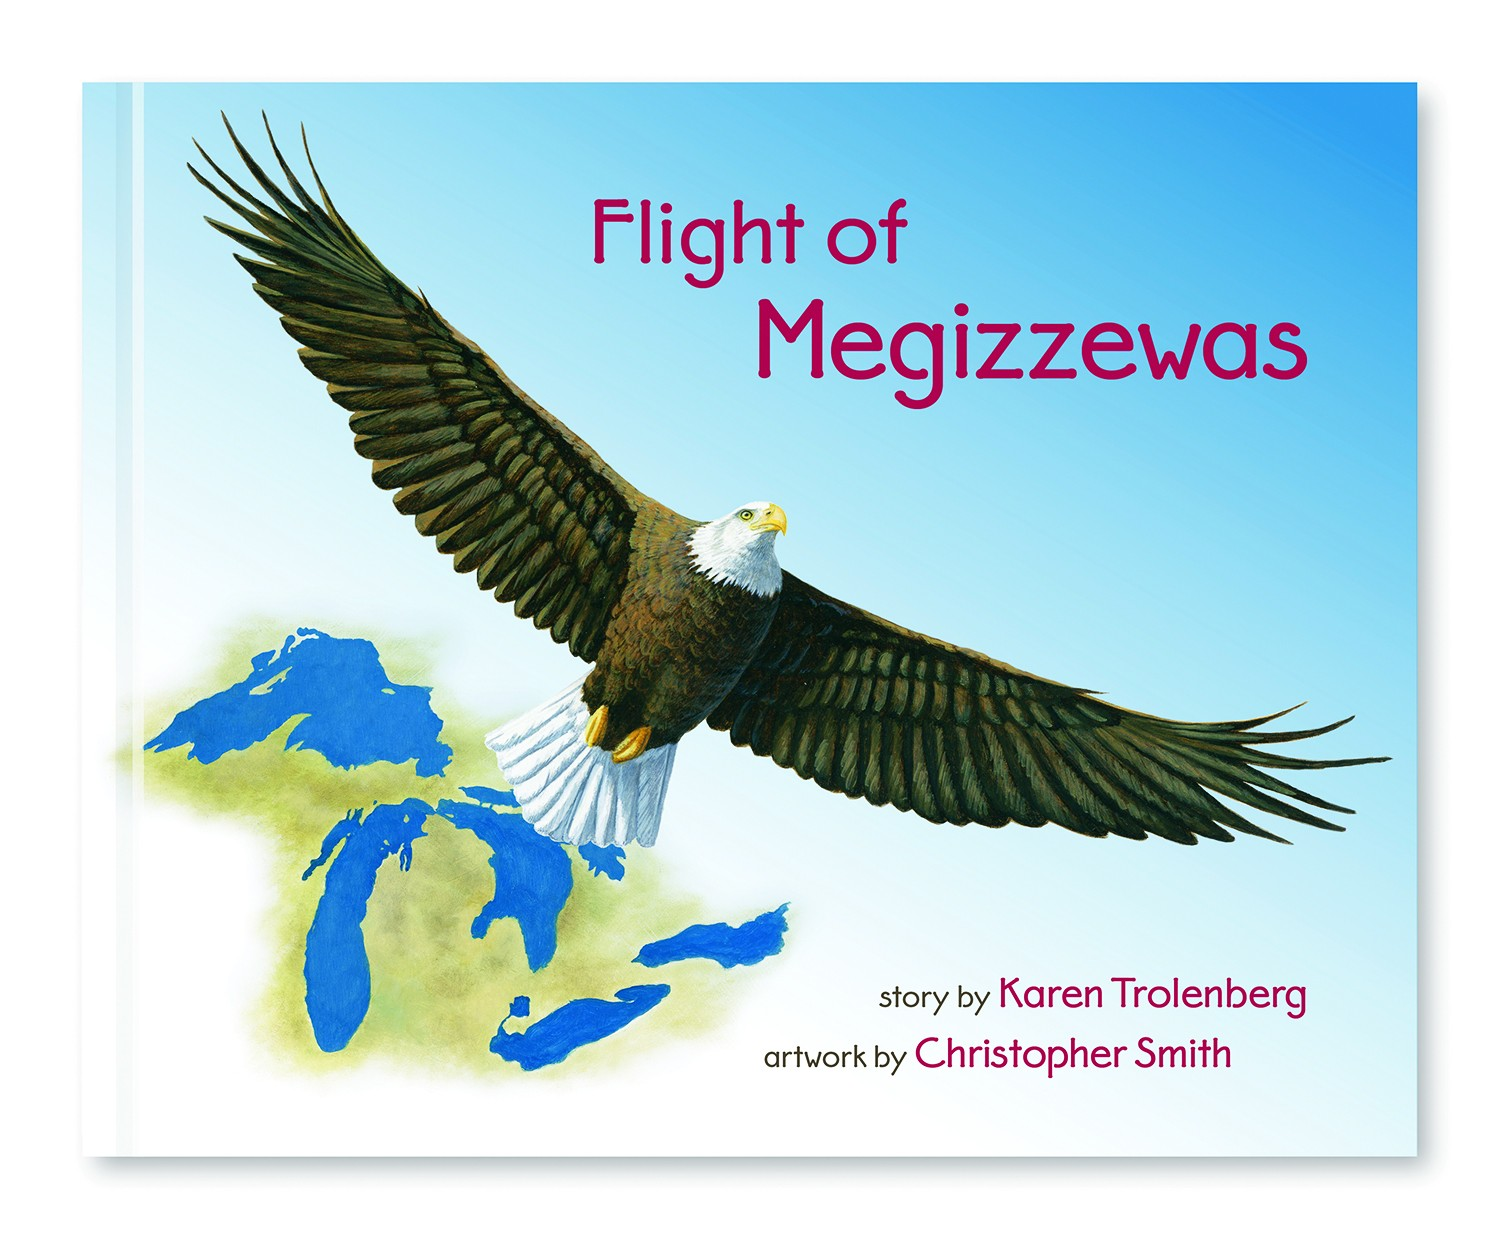 Flight of Megizzewas